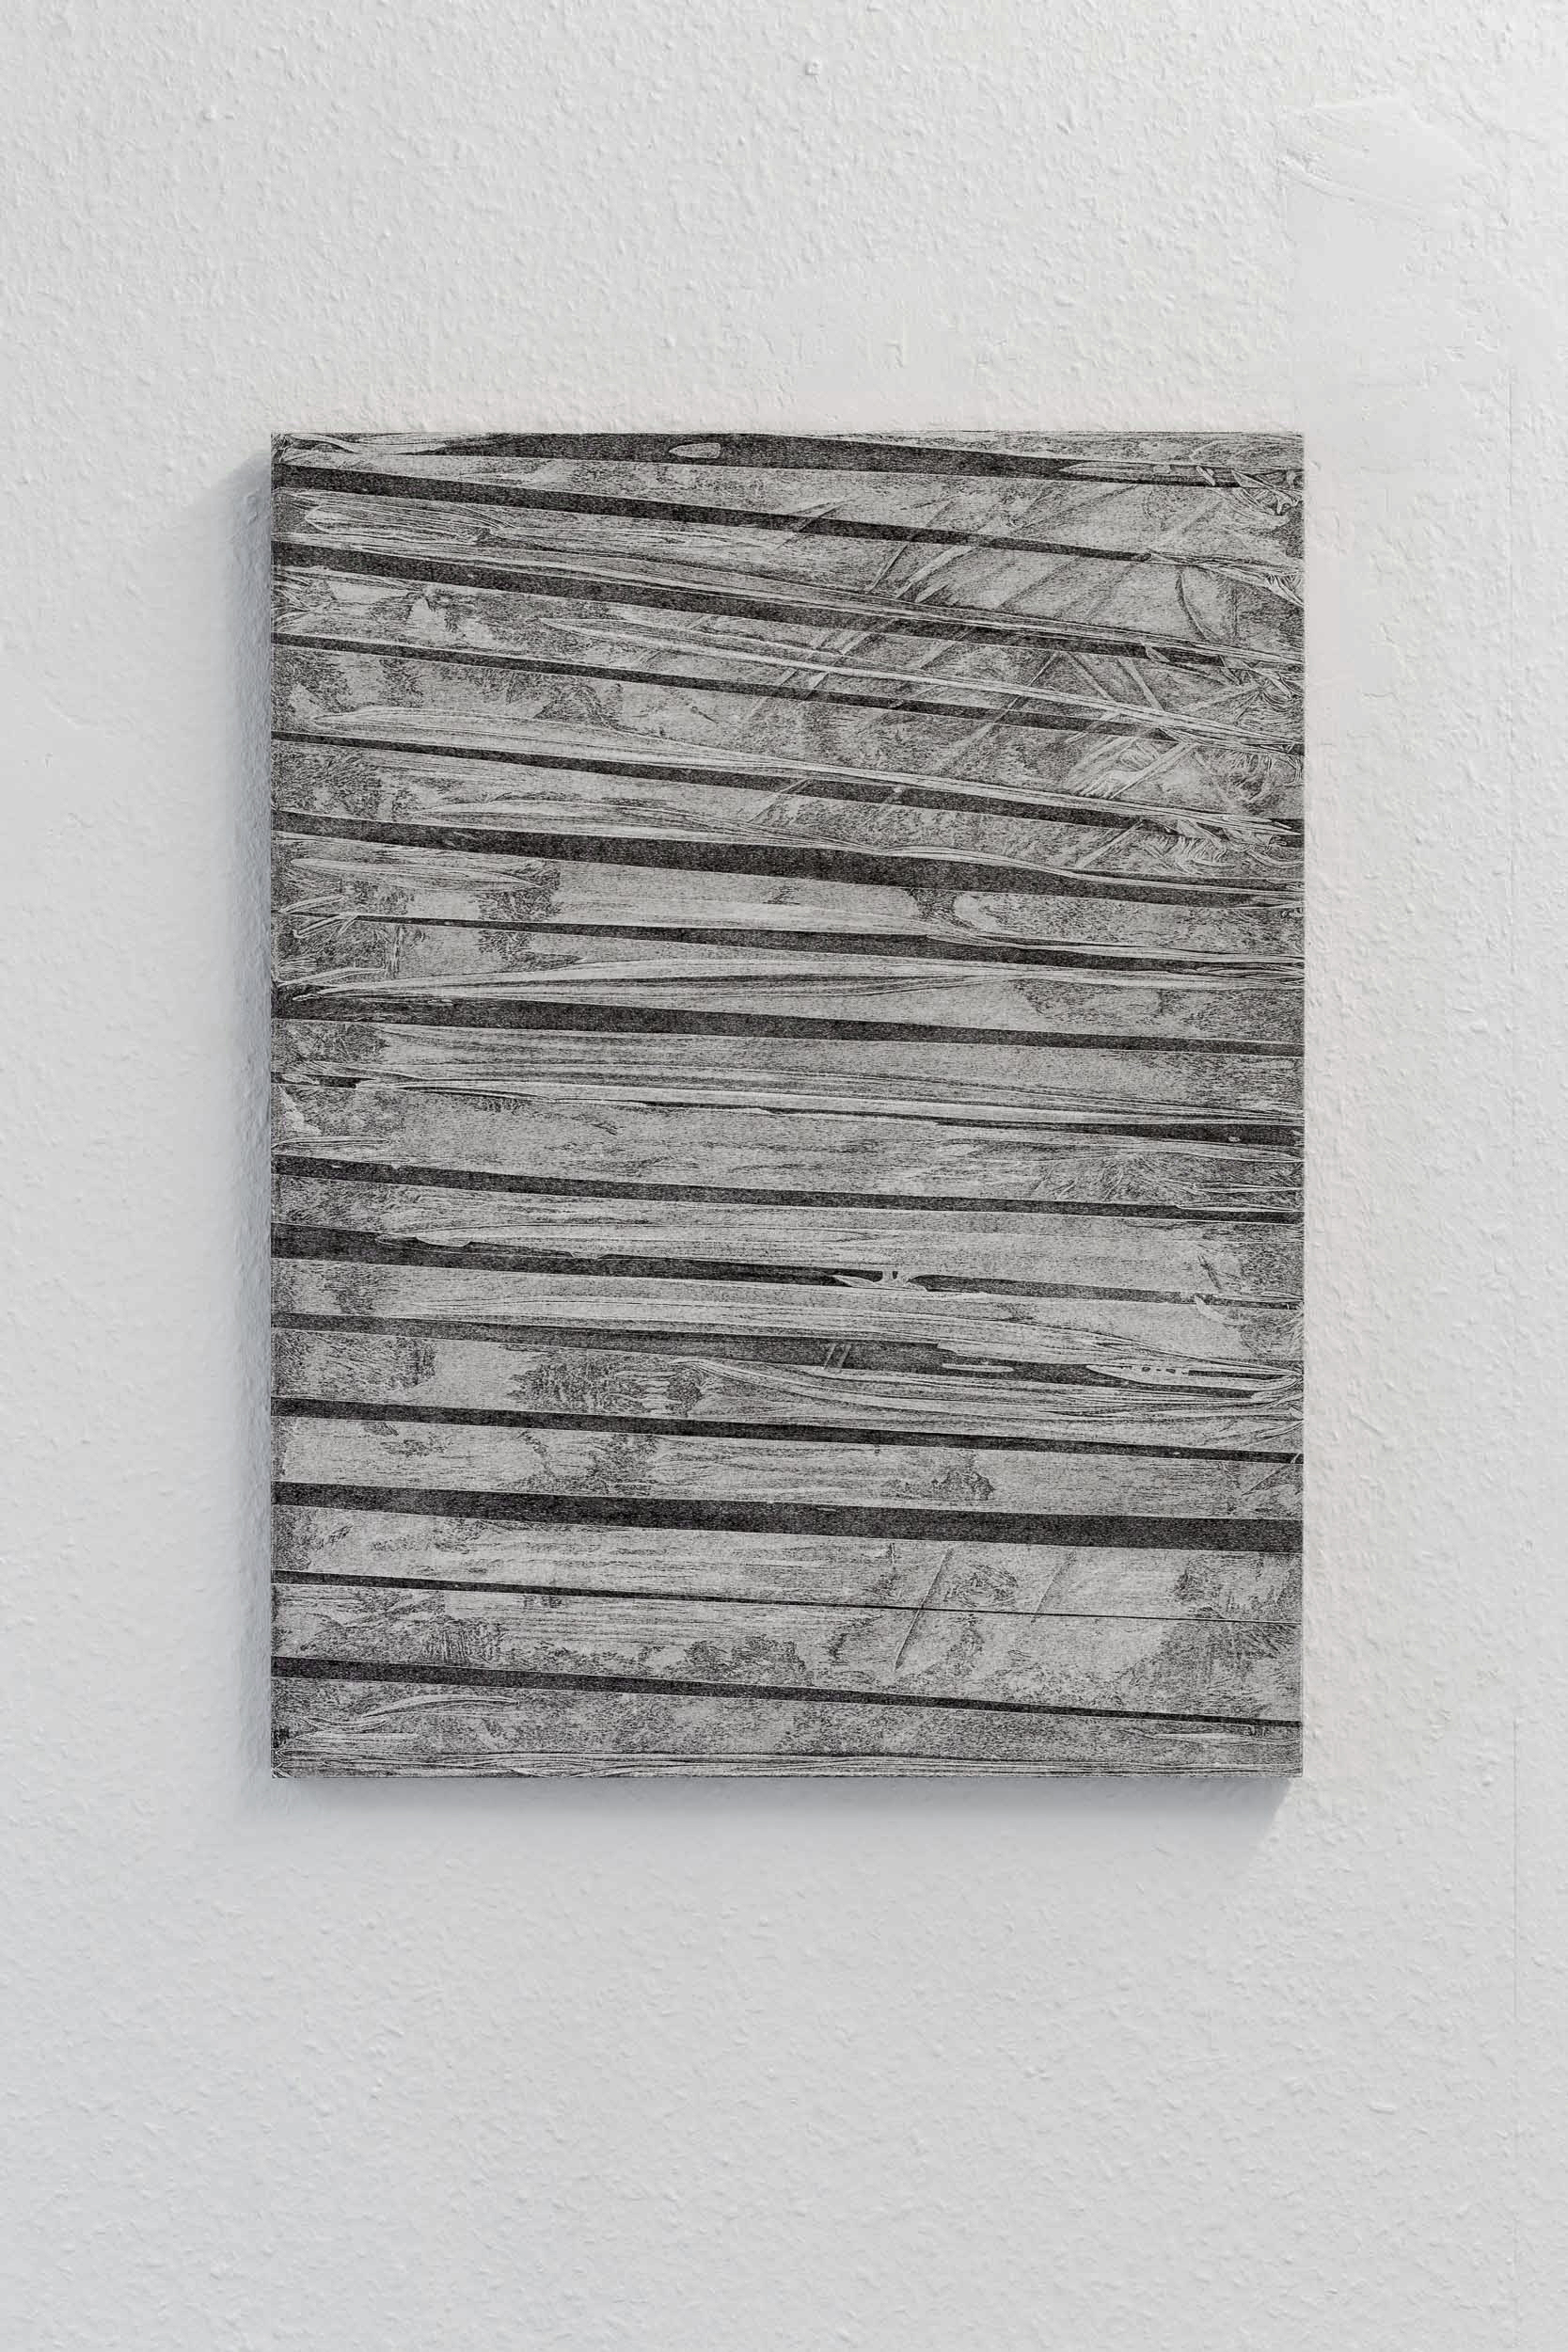 Kong Chun Hei, Stripes , 2017,Ink on paper mounted on aluminium board and wooden frame, 47.1 x 61.4 x 2cm